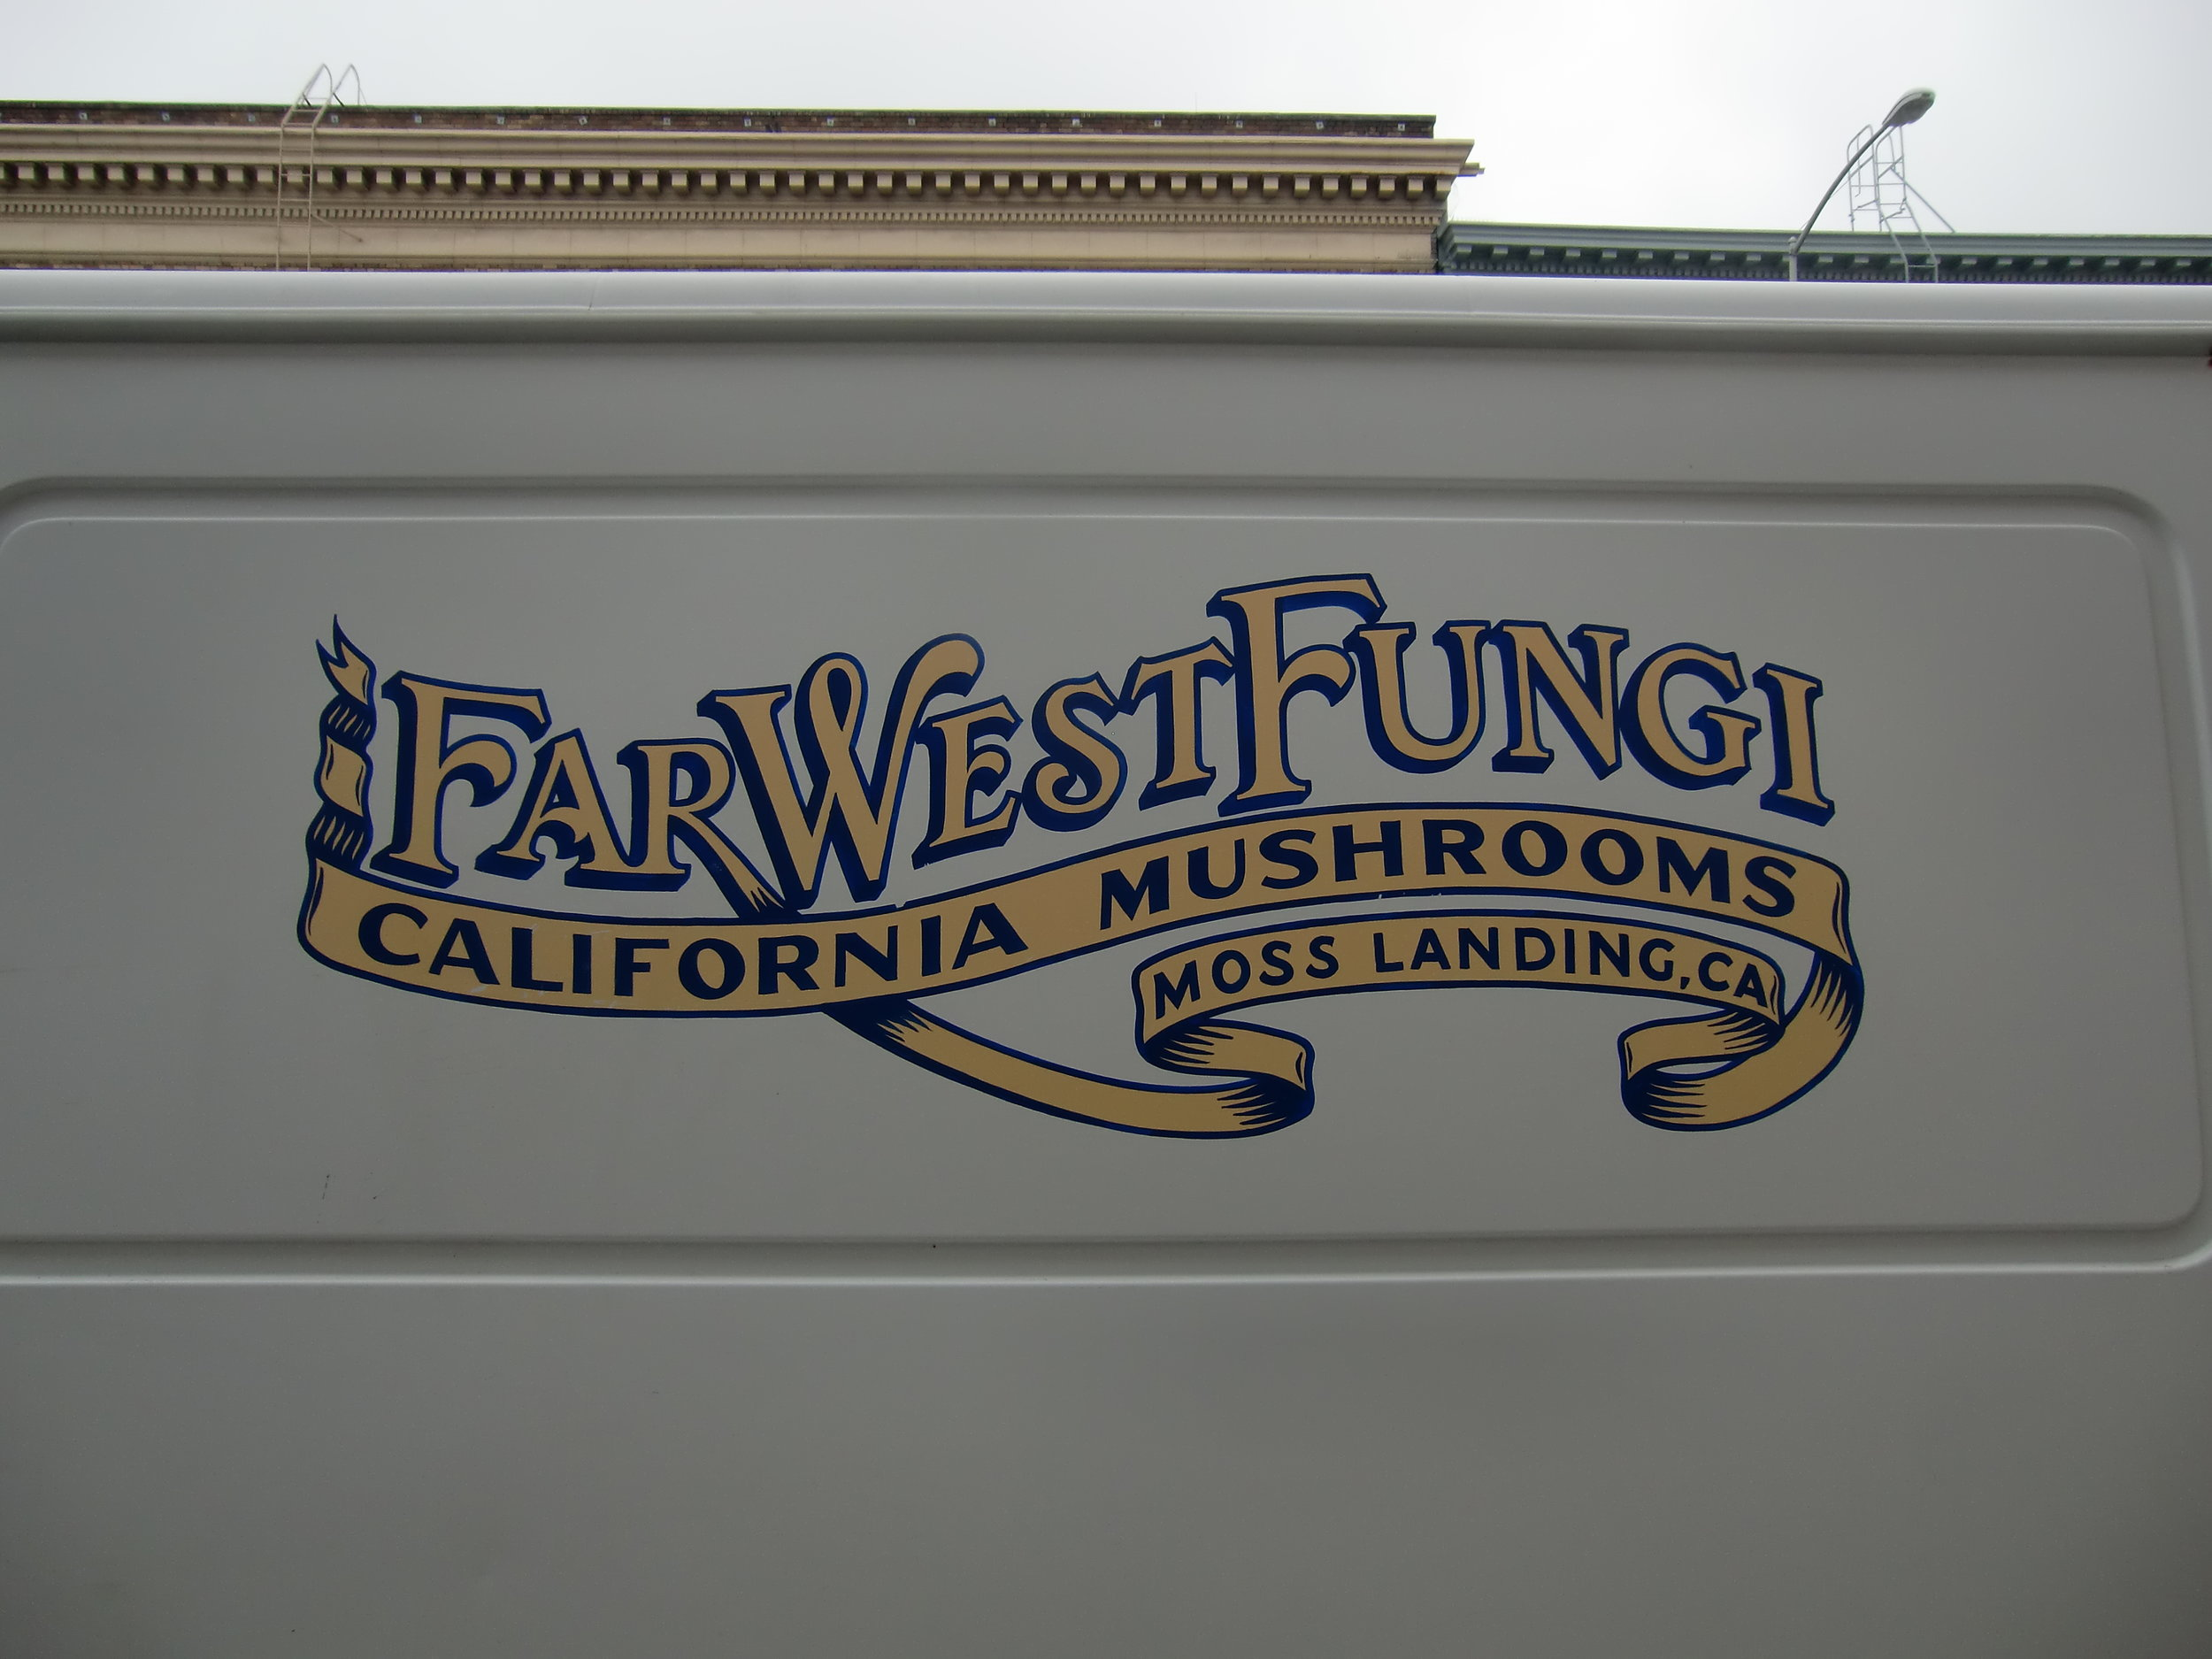 HAND-far-west-fungi-logo-on-van_5958864433_o.jpg